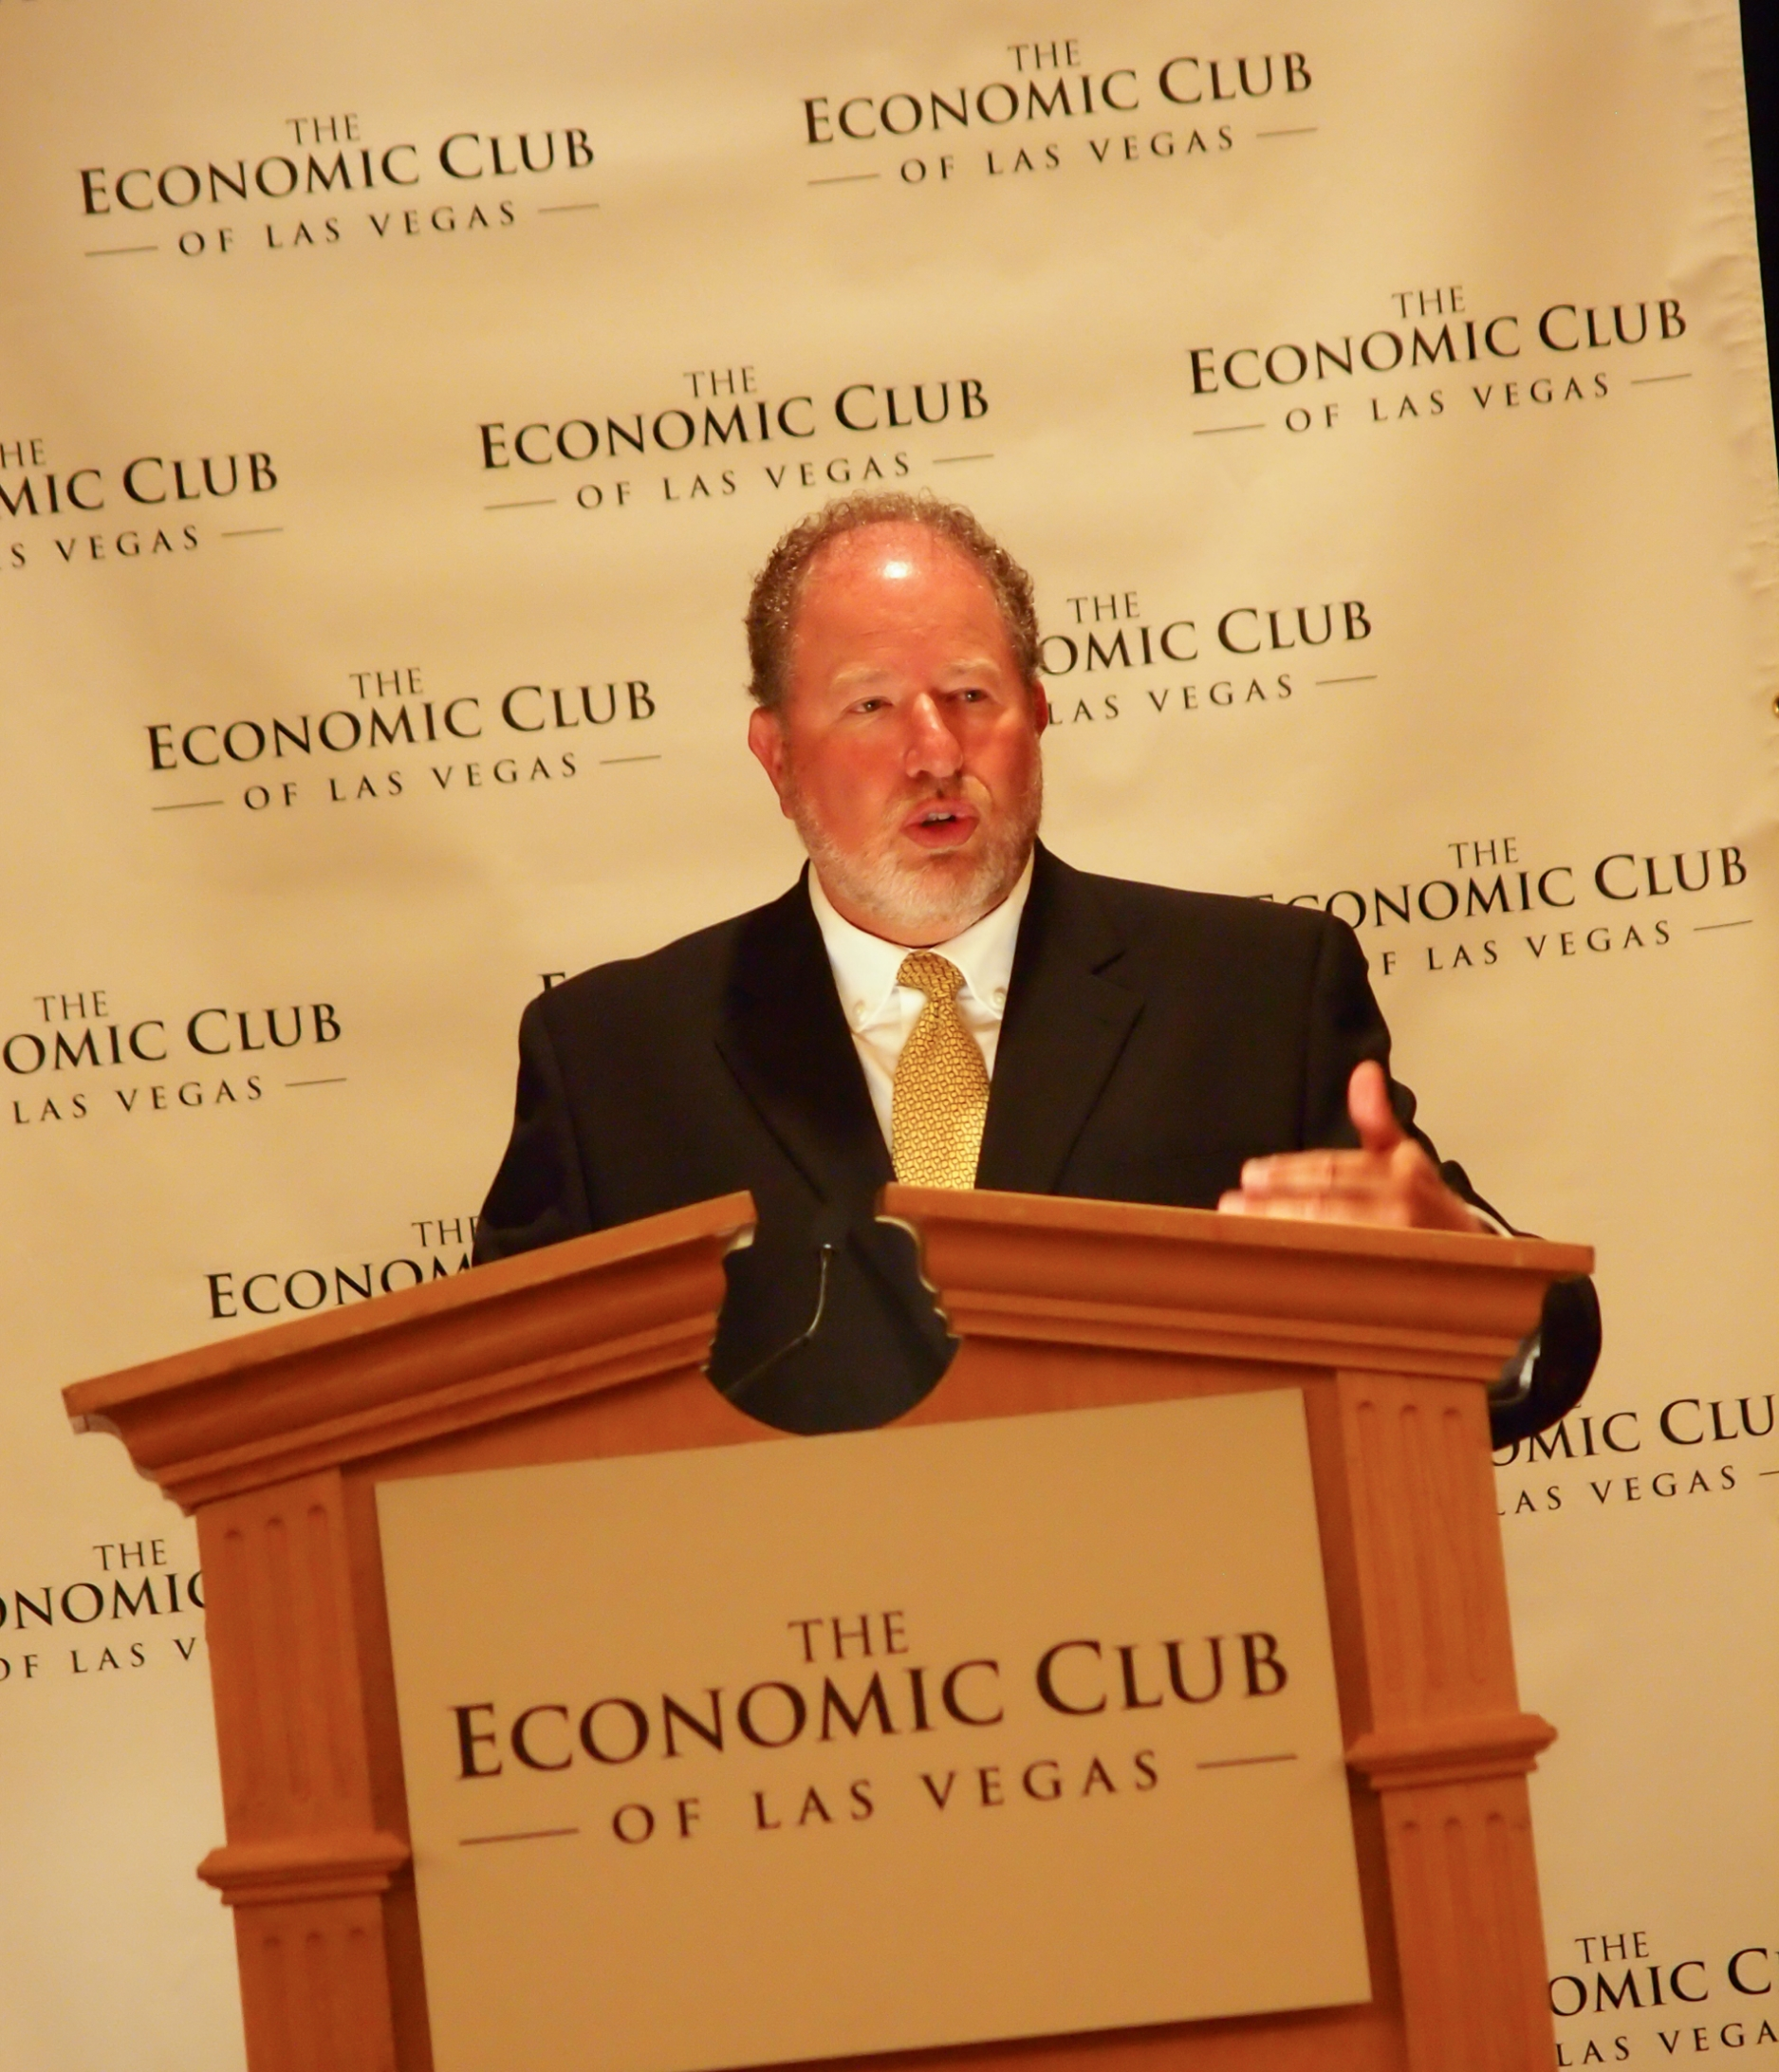 William Strauss - Federal Reserve Bank of Chicago